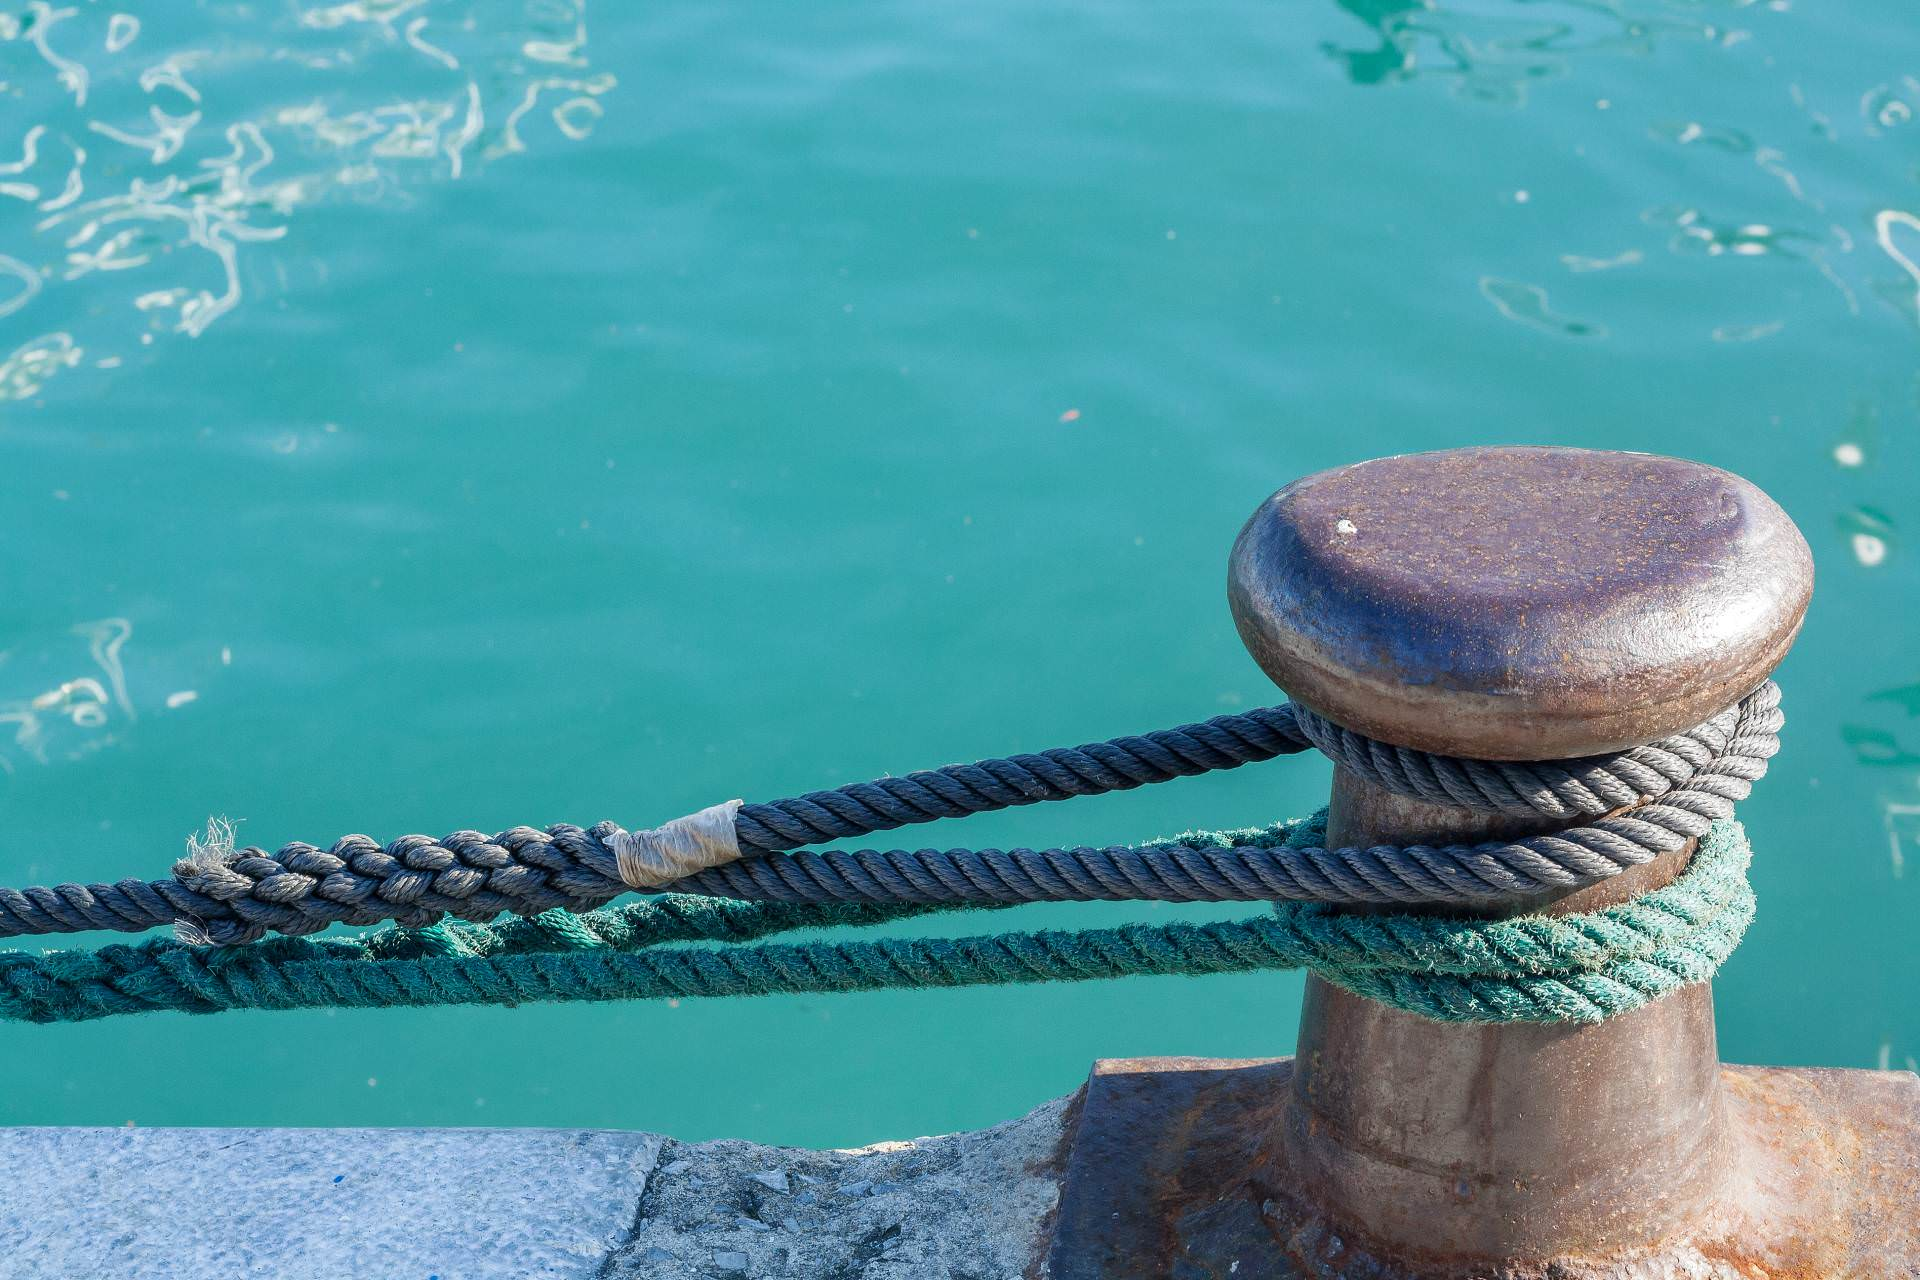 rope, fidelity, fear, trust, port, serenity, security, moorings, anchor